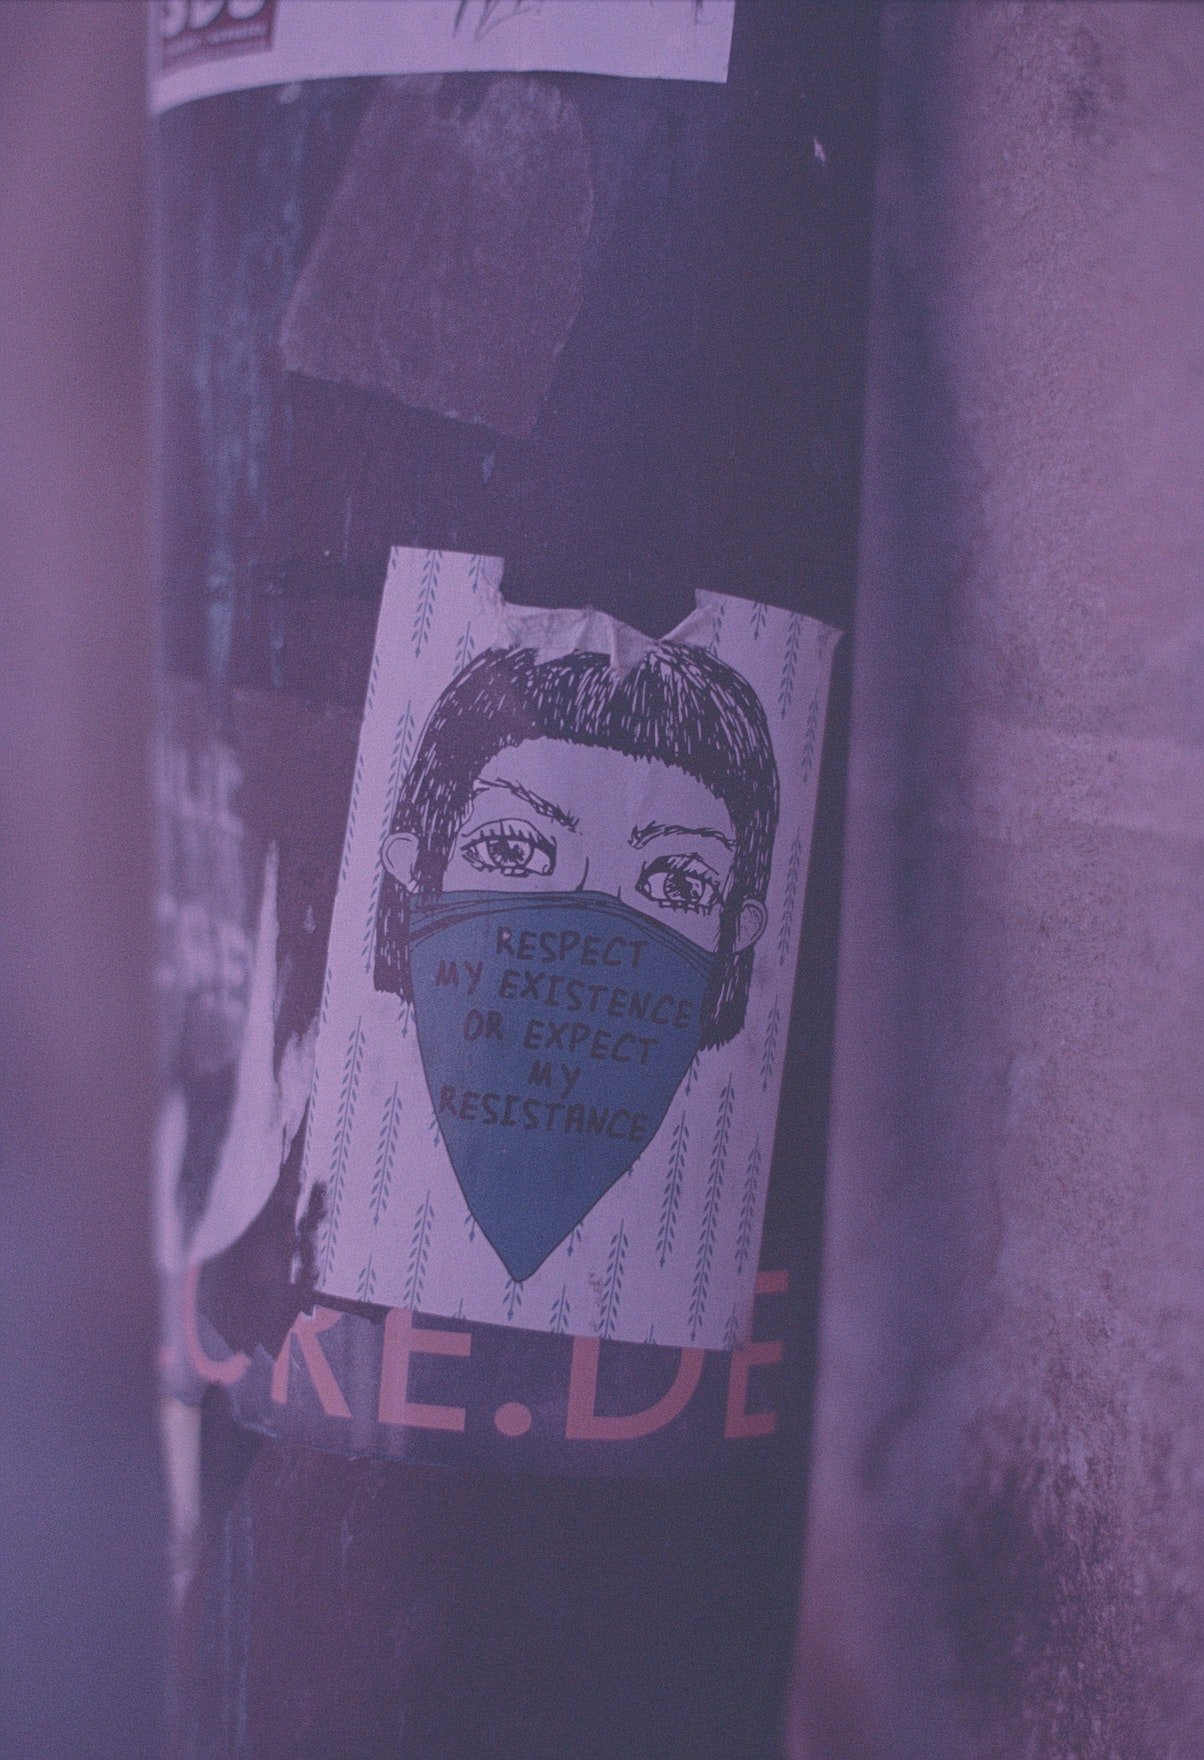 a purple-tinged photograph of a protest poster pinned to a lamp post